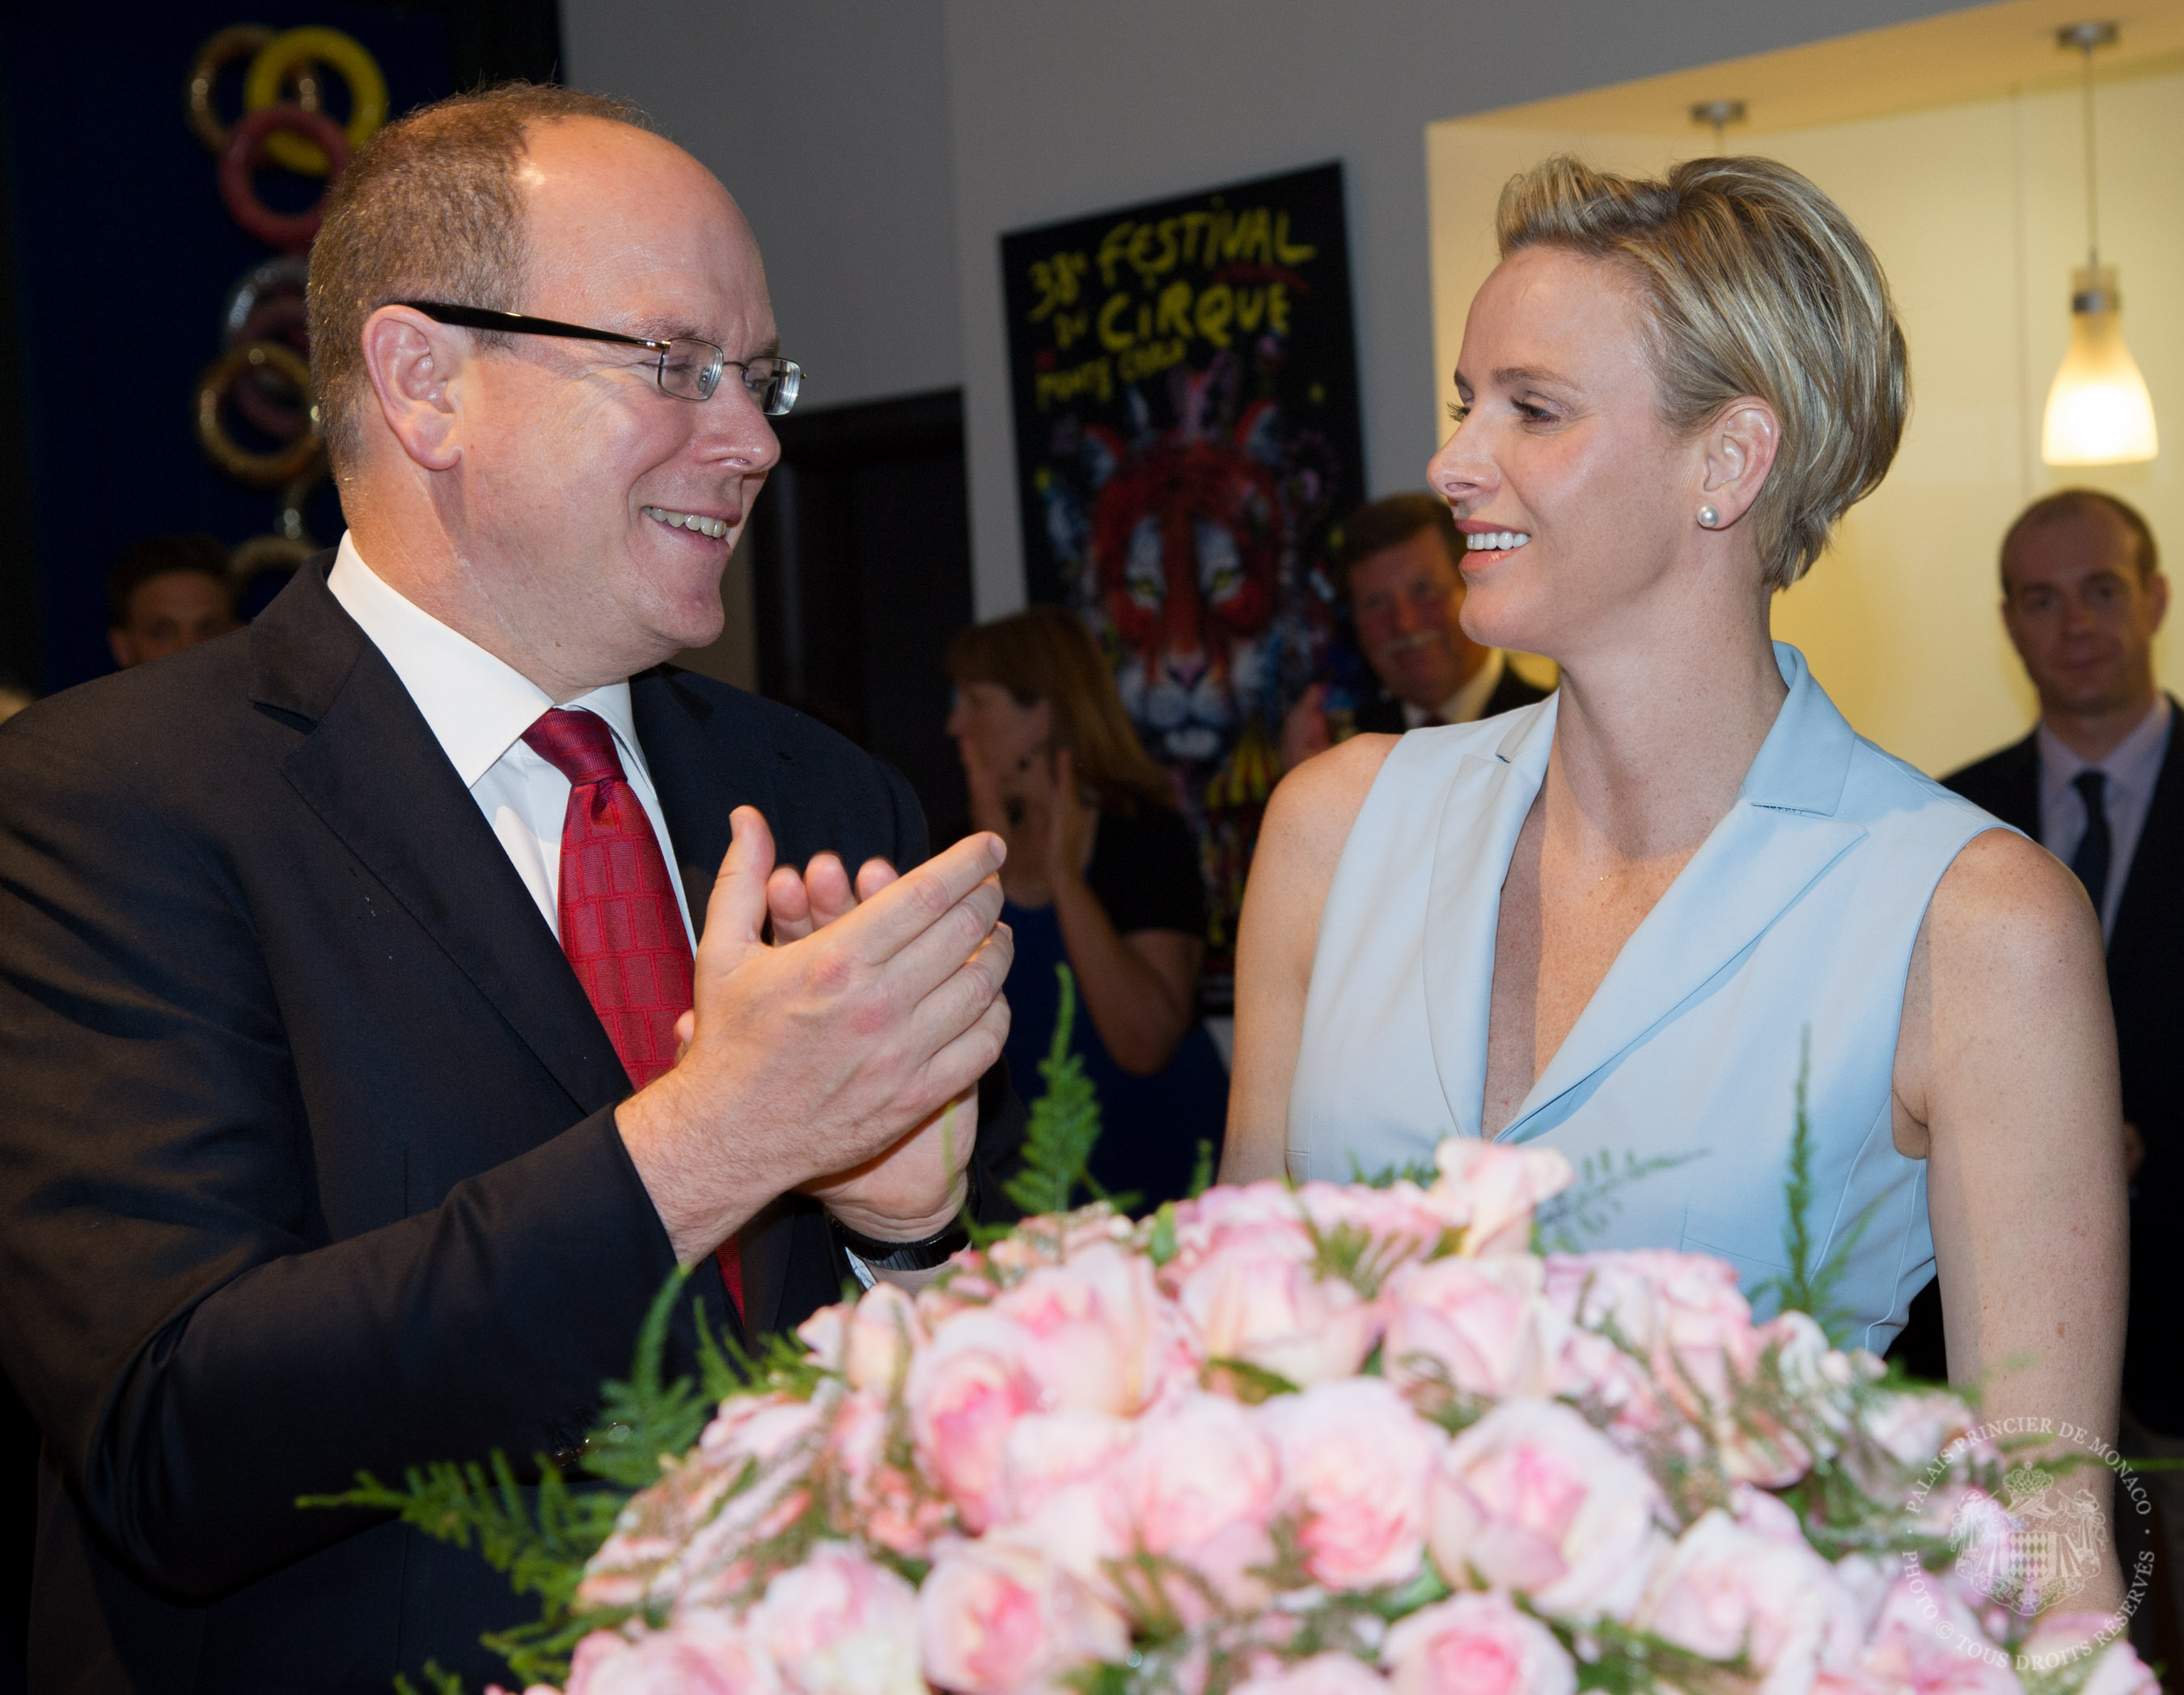 Princesse Charlene during the inauguration of her rose in june 2014 | Meilland Jardin & Parfum Rose 'Princesse Charlene de Monaco' is available at www.parfumflowercompany.com | David Austin Wedding Roses, Meilland Jardin & Parfum Roses and other Luxury (scented) roses